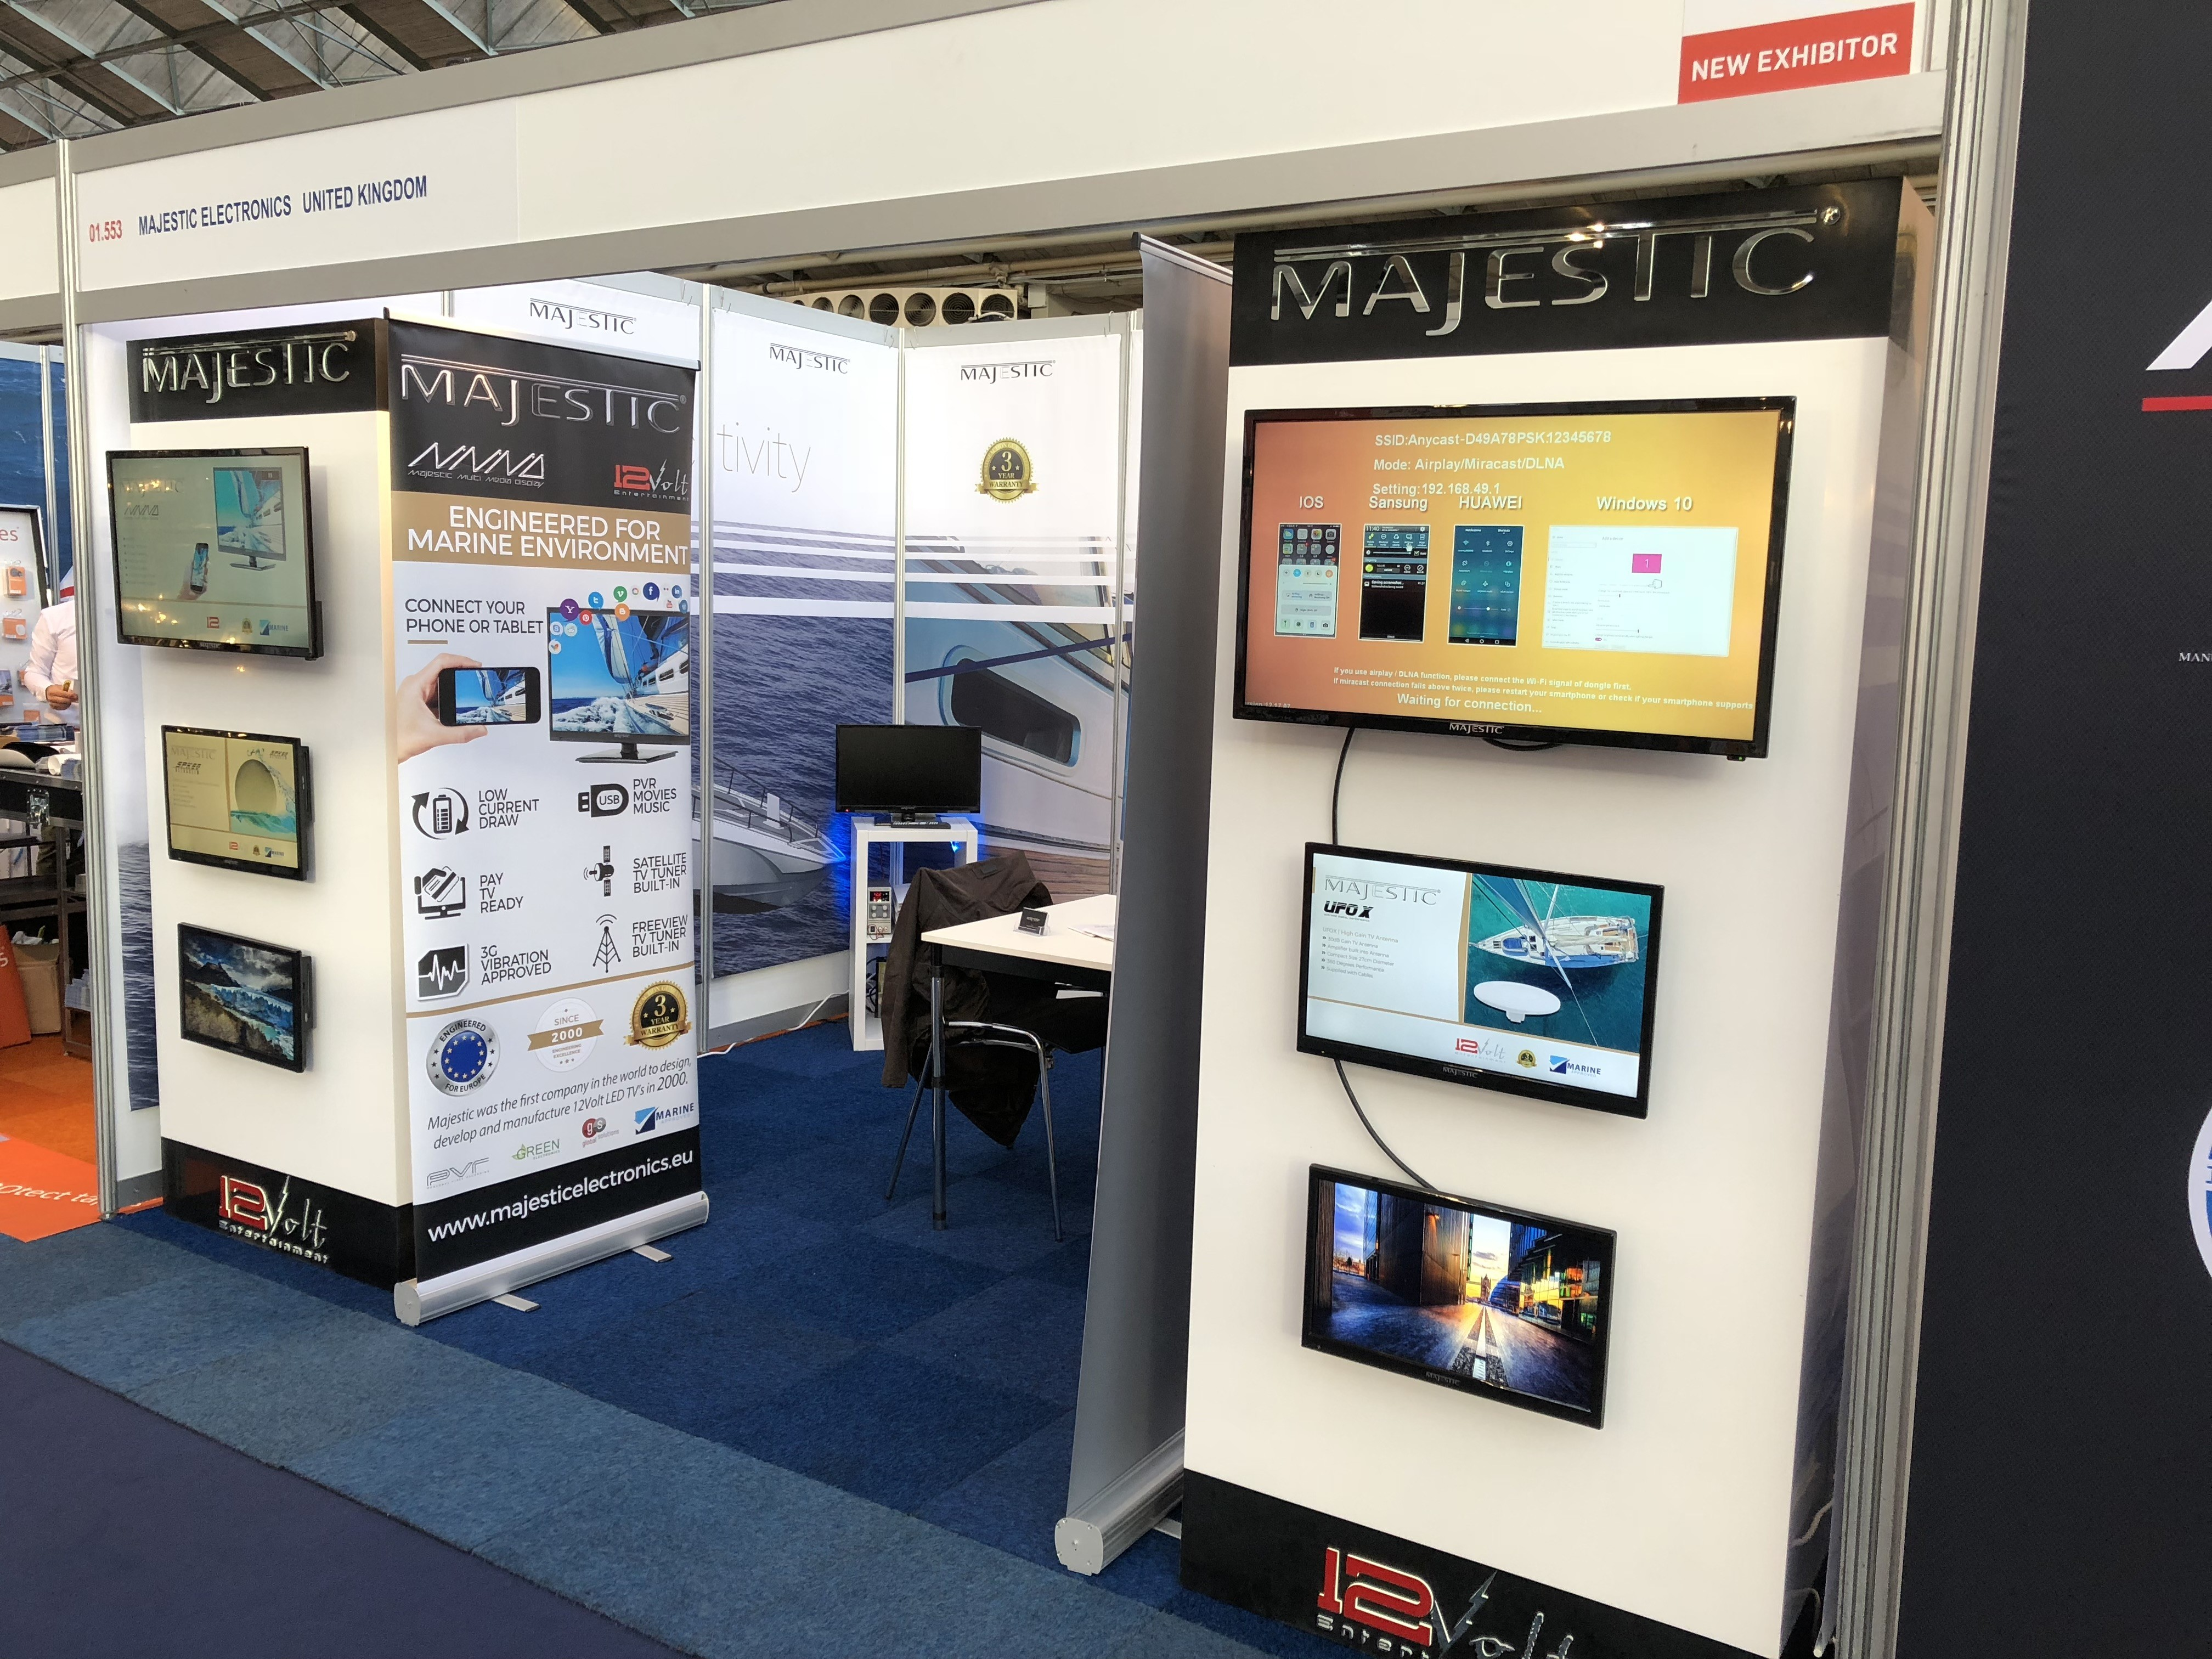 12 Volt Marine TVs were on display at METS with more distributors signing up with Majestic Electronics.